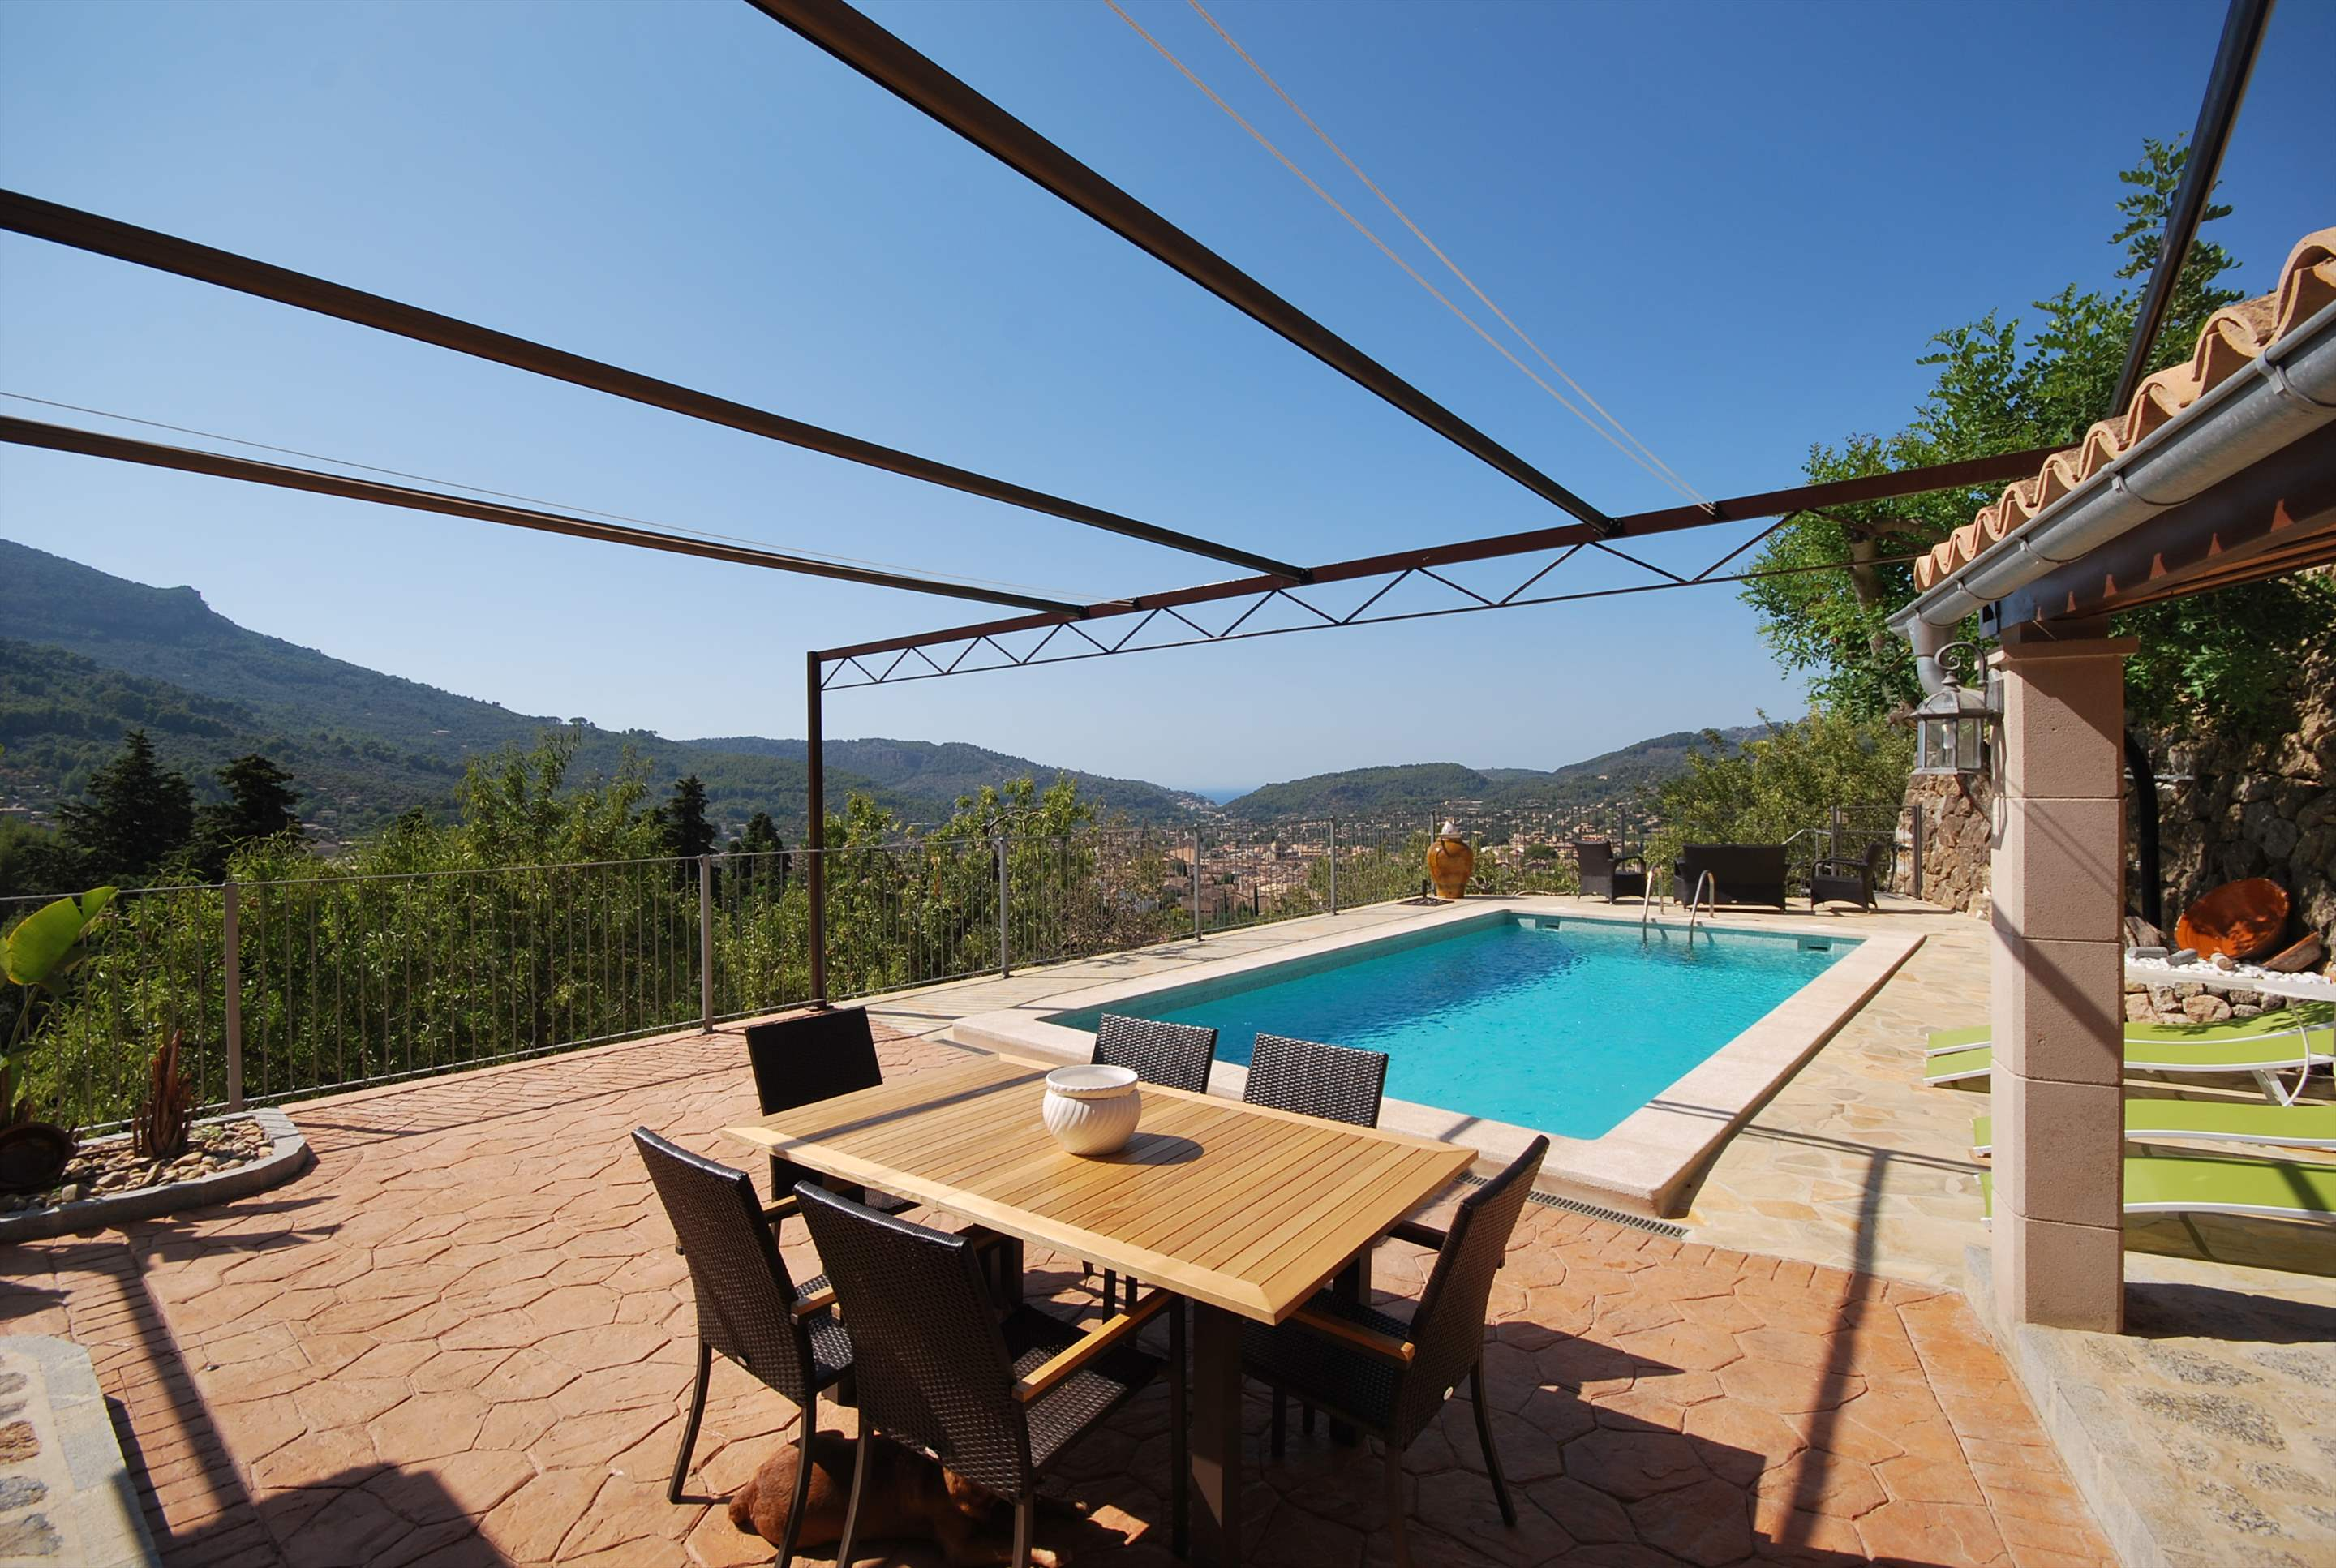 Casa Tres Cruces - SO1797, 3 bedroom villa in Soller & Deia, Majorca